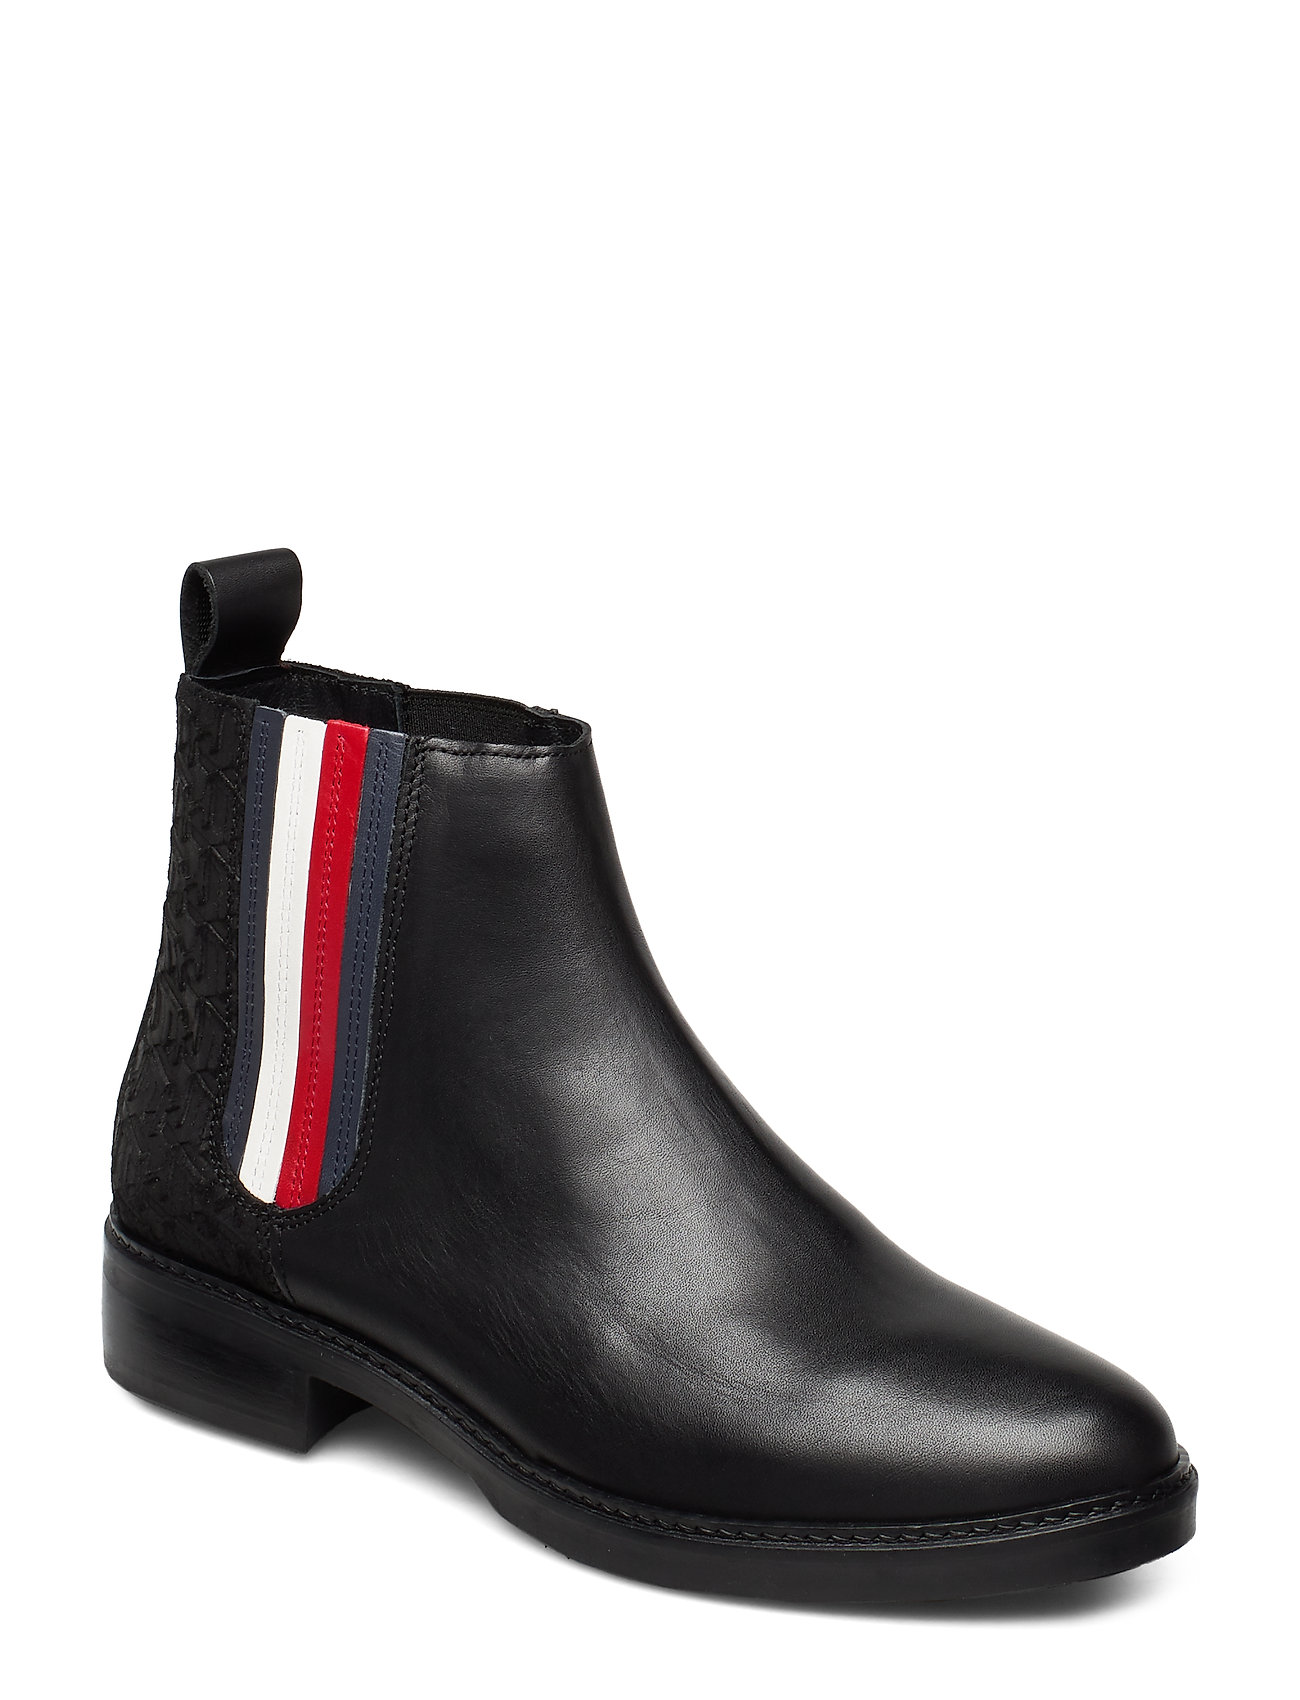 Image of Sporty Monogram Flat Bootie Shoes Boots Ankle Boots Ankle Boots Flat Heel Sort Tommy Hilfiger (3247206461)